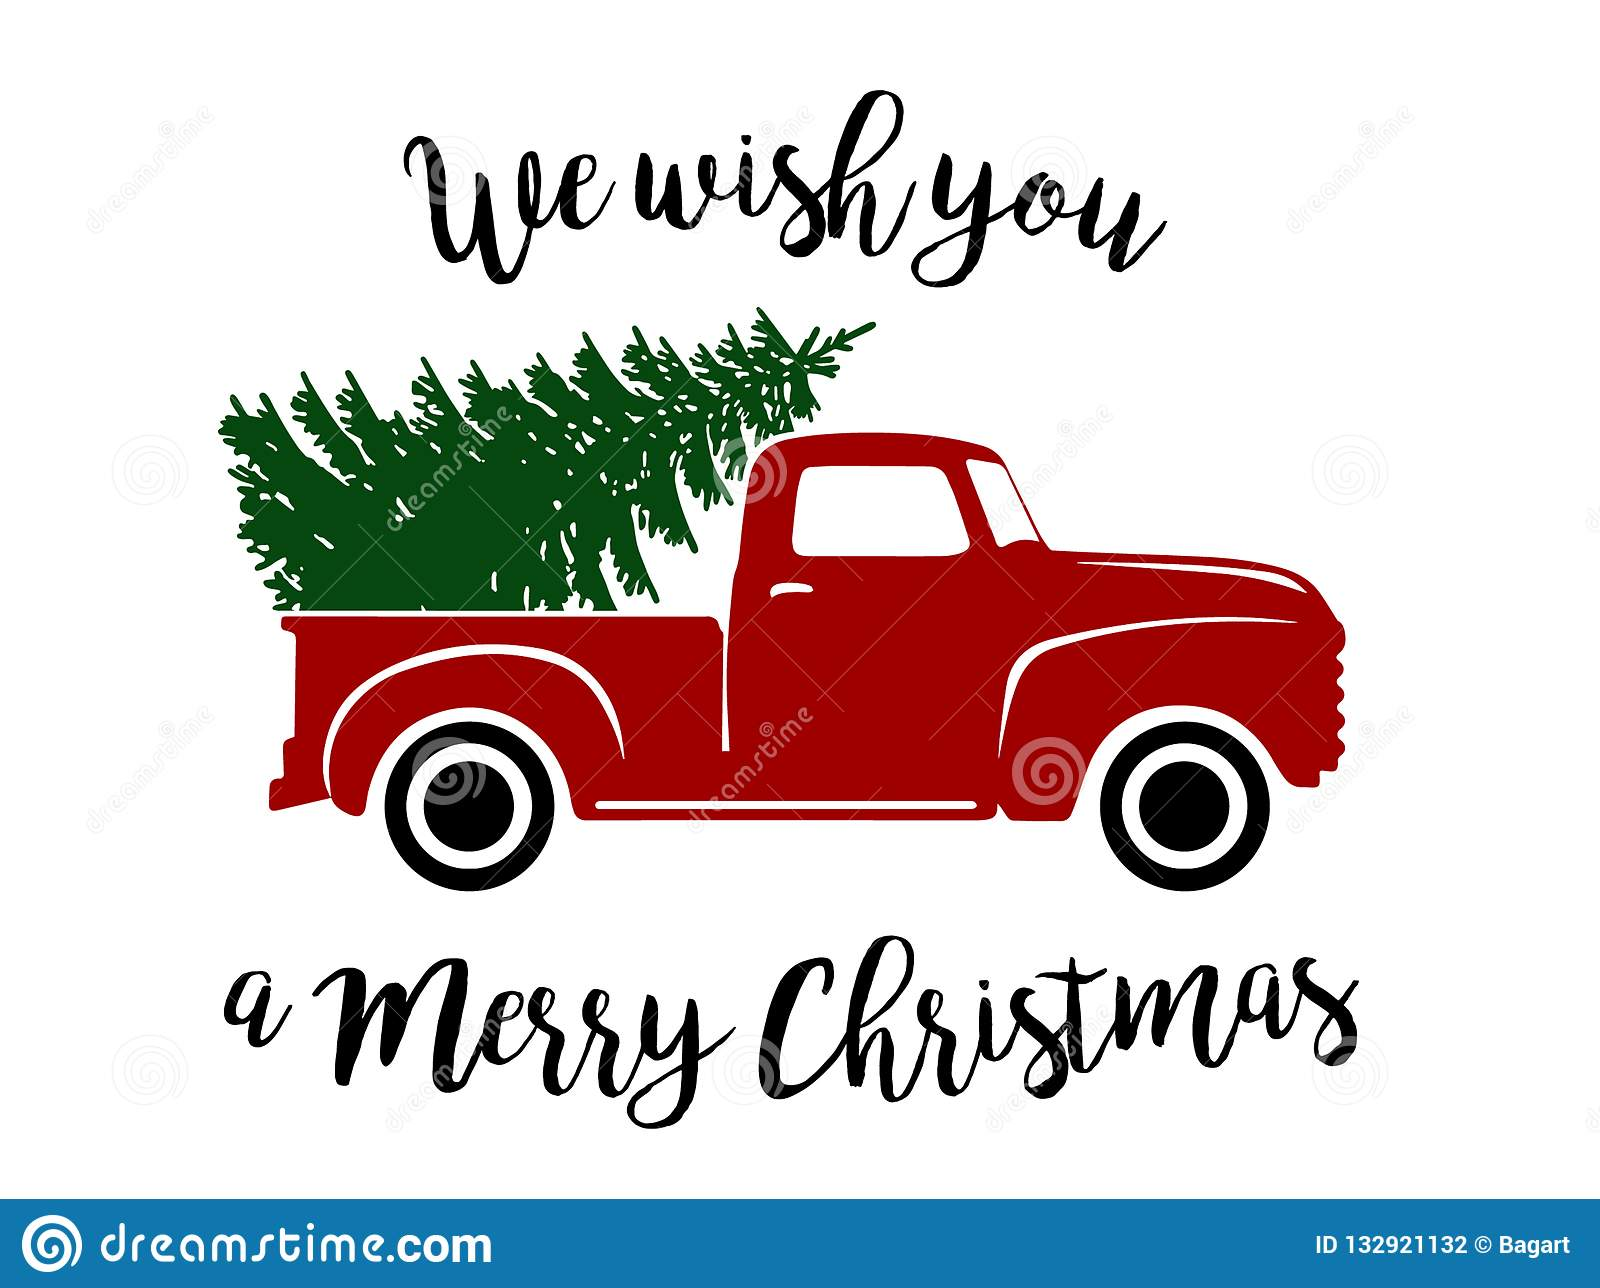 Old Christmas Truck stock vector. Illustration of flowing.